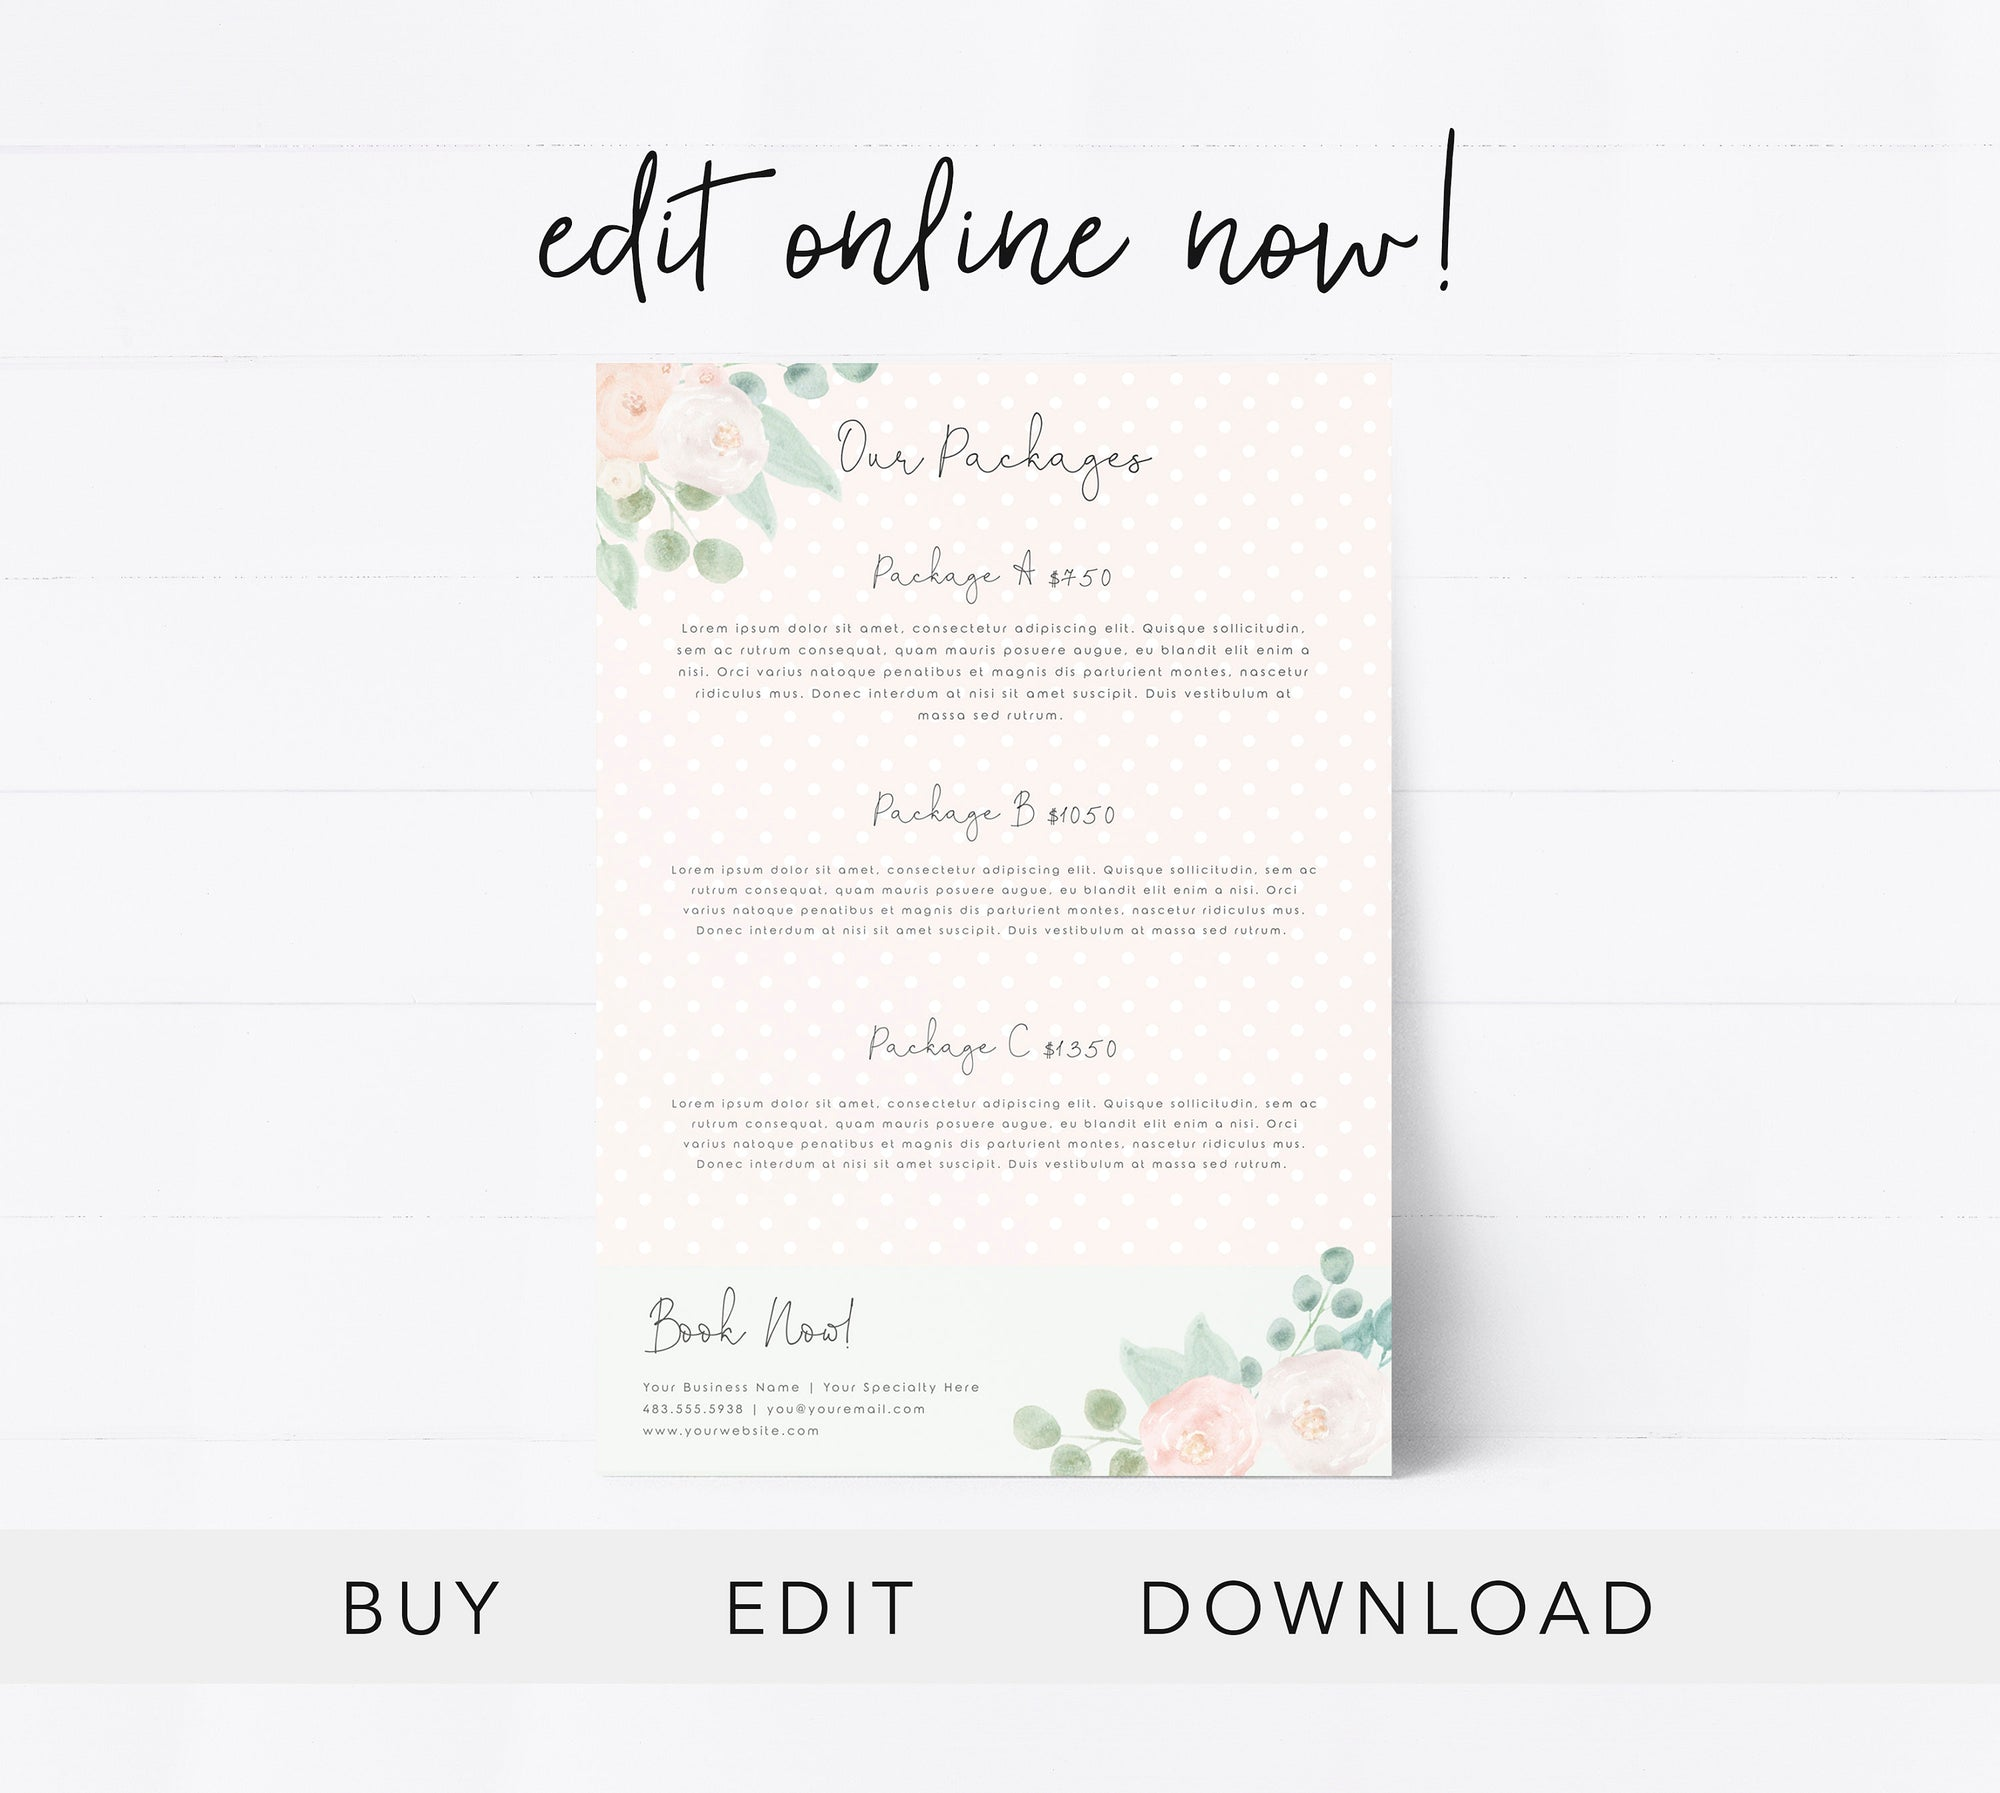 Editable Pricing Guide Template